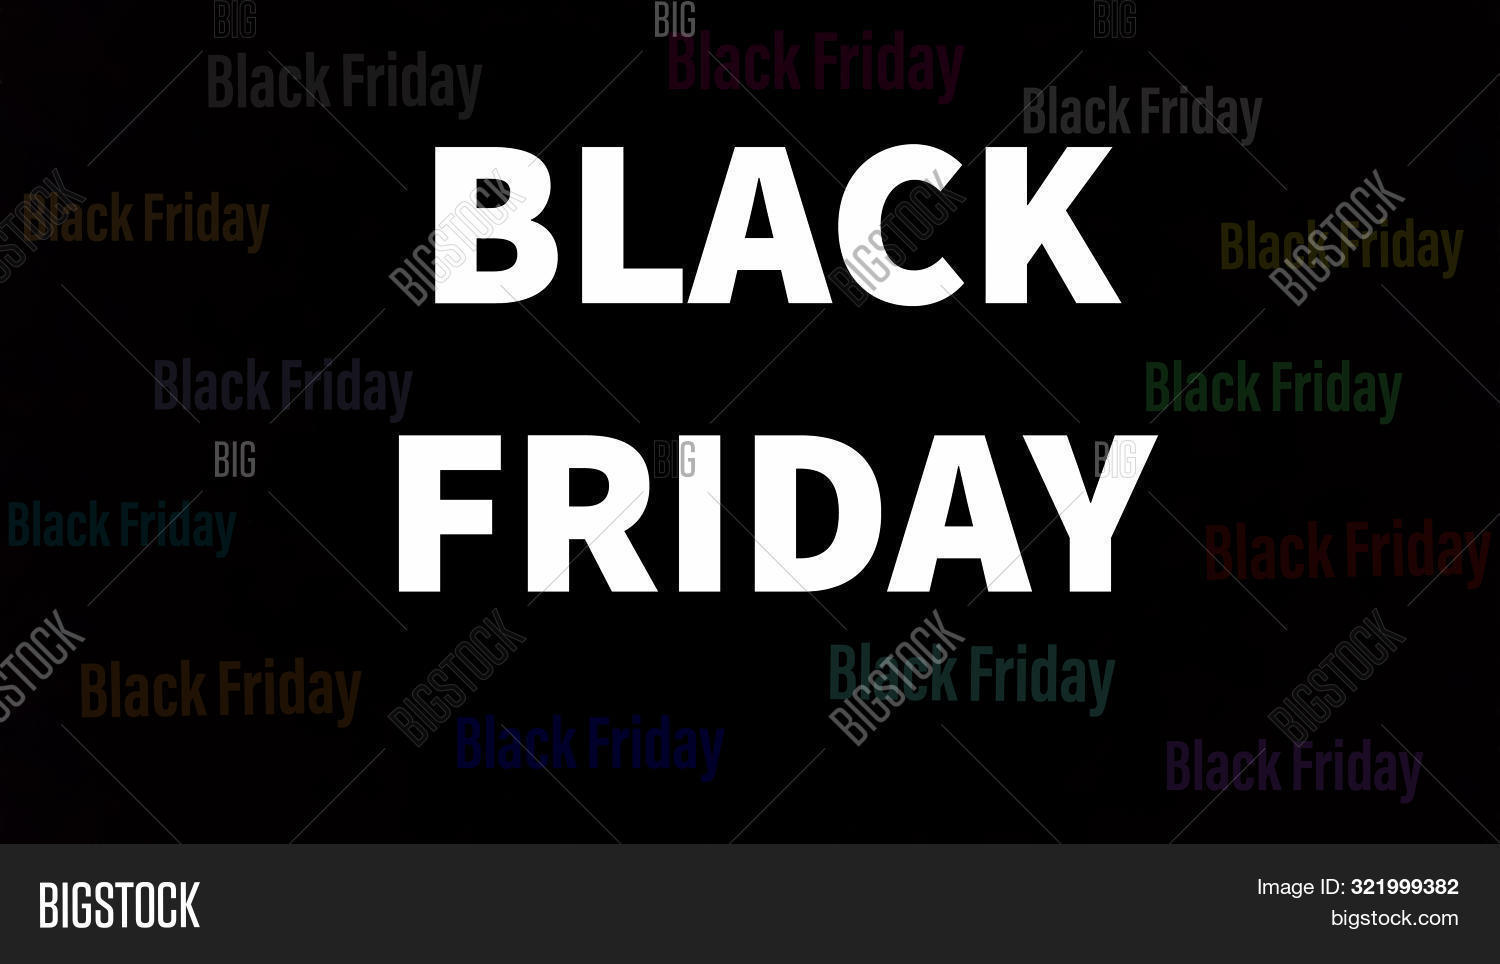 Black Friday Words Image Photo Free Trial Bigstock